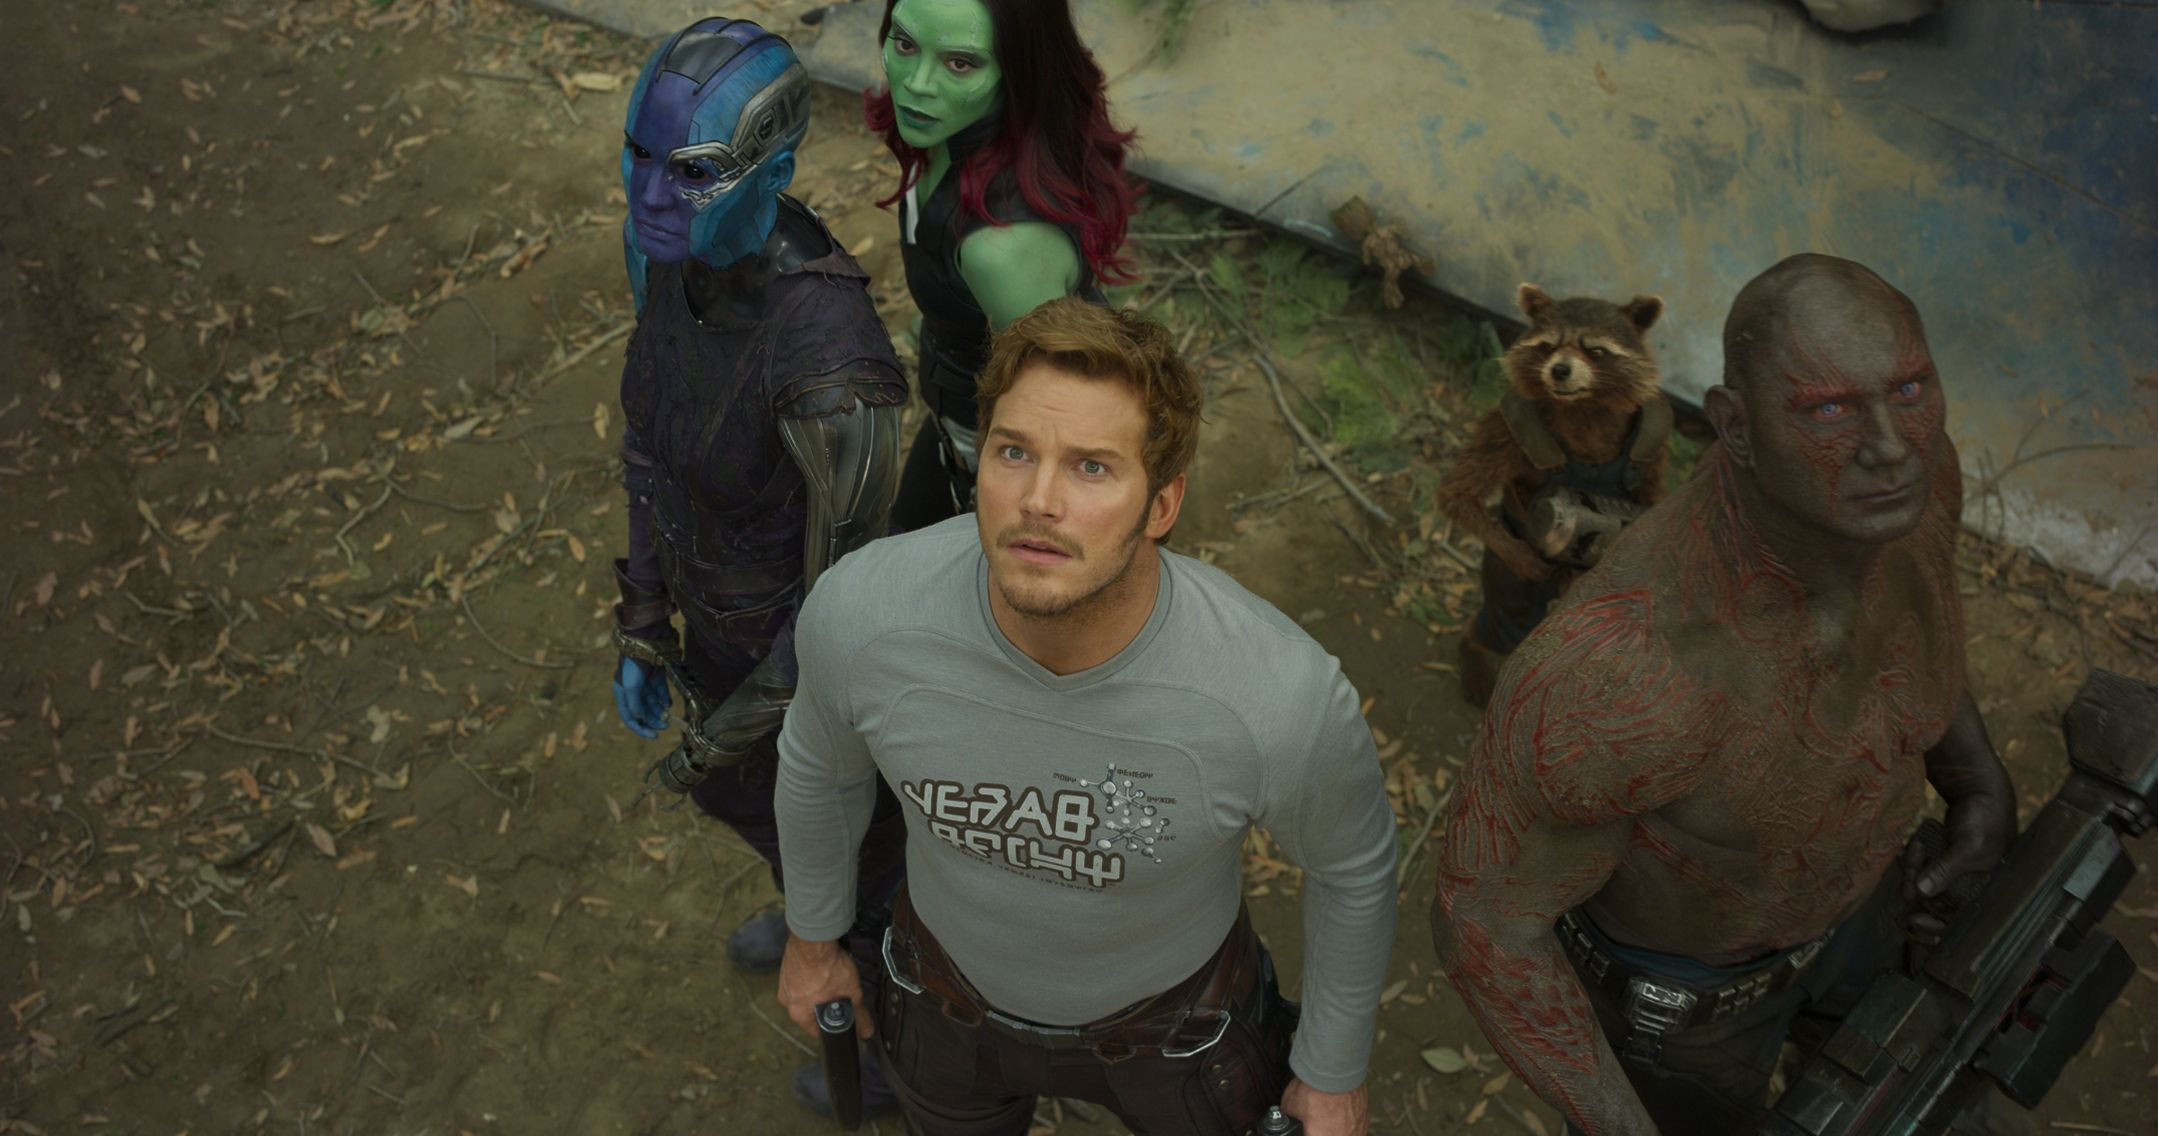 Chris Pratt REFUSES To Take Photos With Fans!